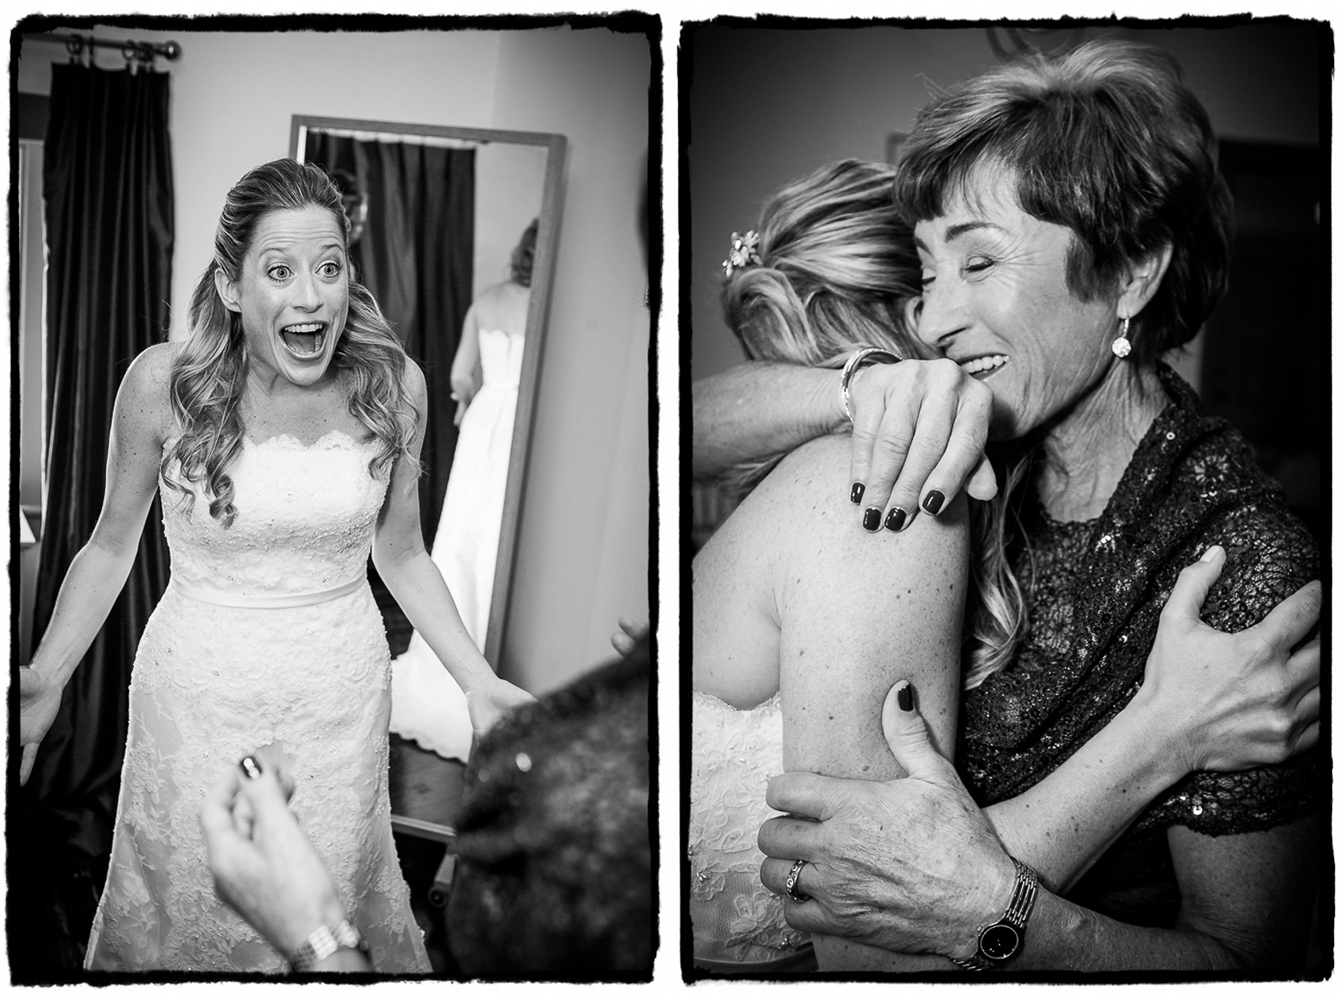 Noelle and her mother share an excited hug after she put her dress on for the wedding.